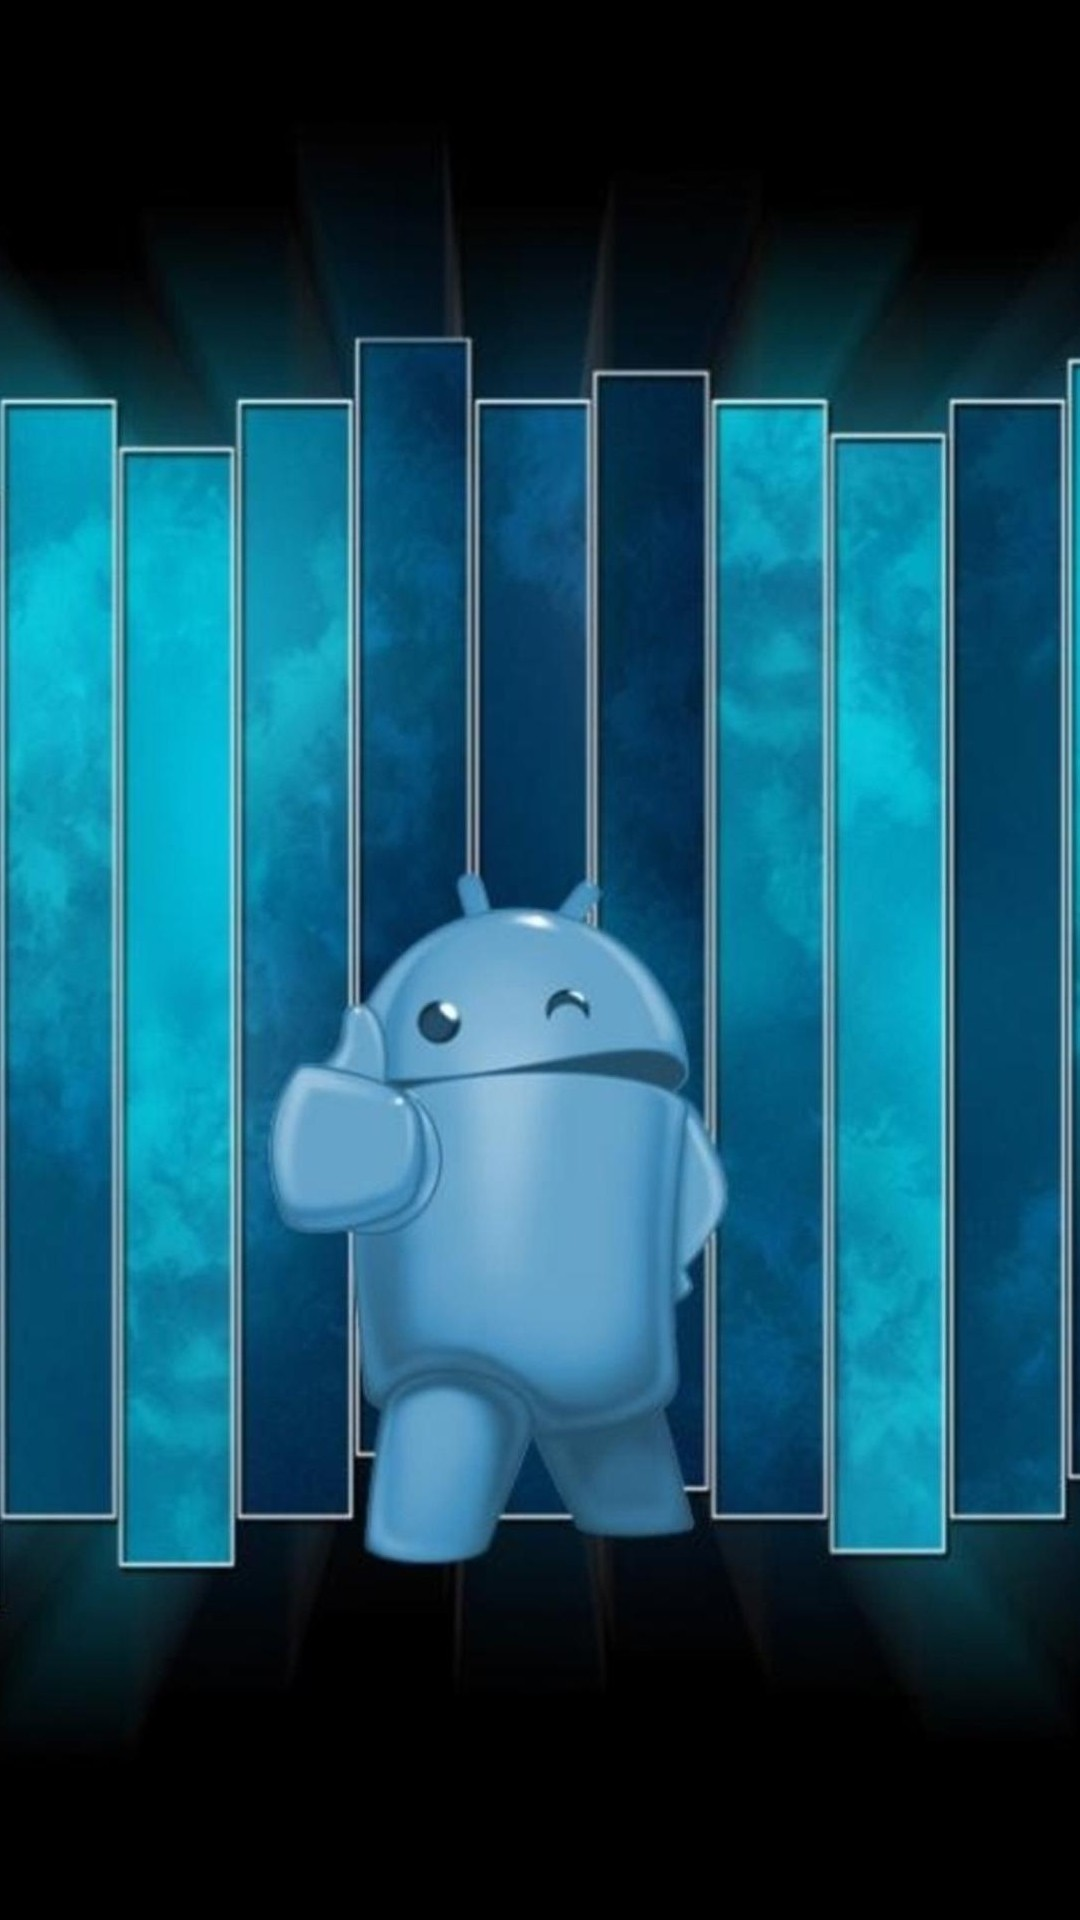 Android thumbs up blue smartphone wallpapers hd getphotos for Smartphone hd wallpaper